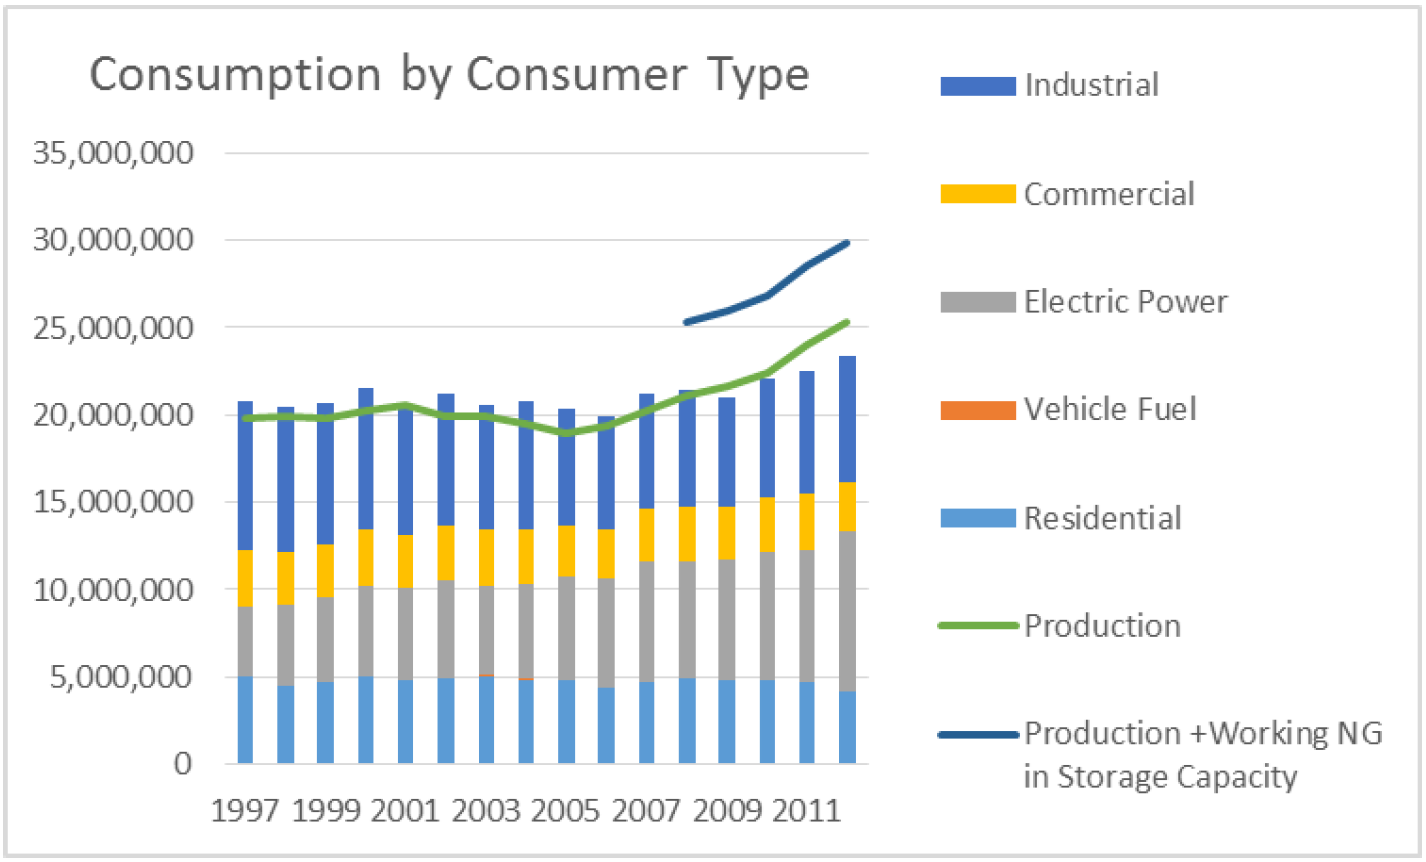 Consumption by Consumer Type